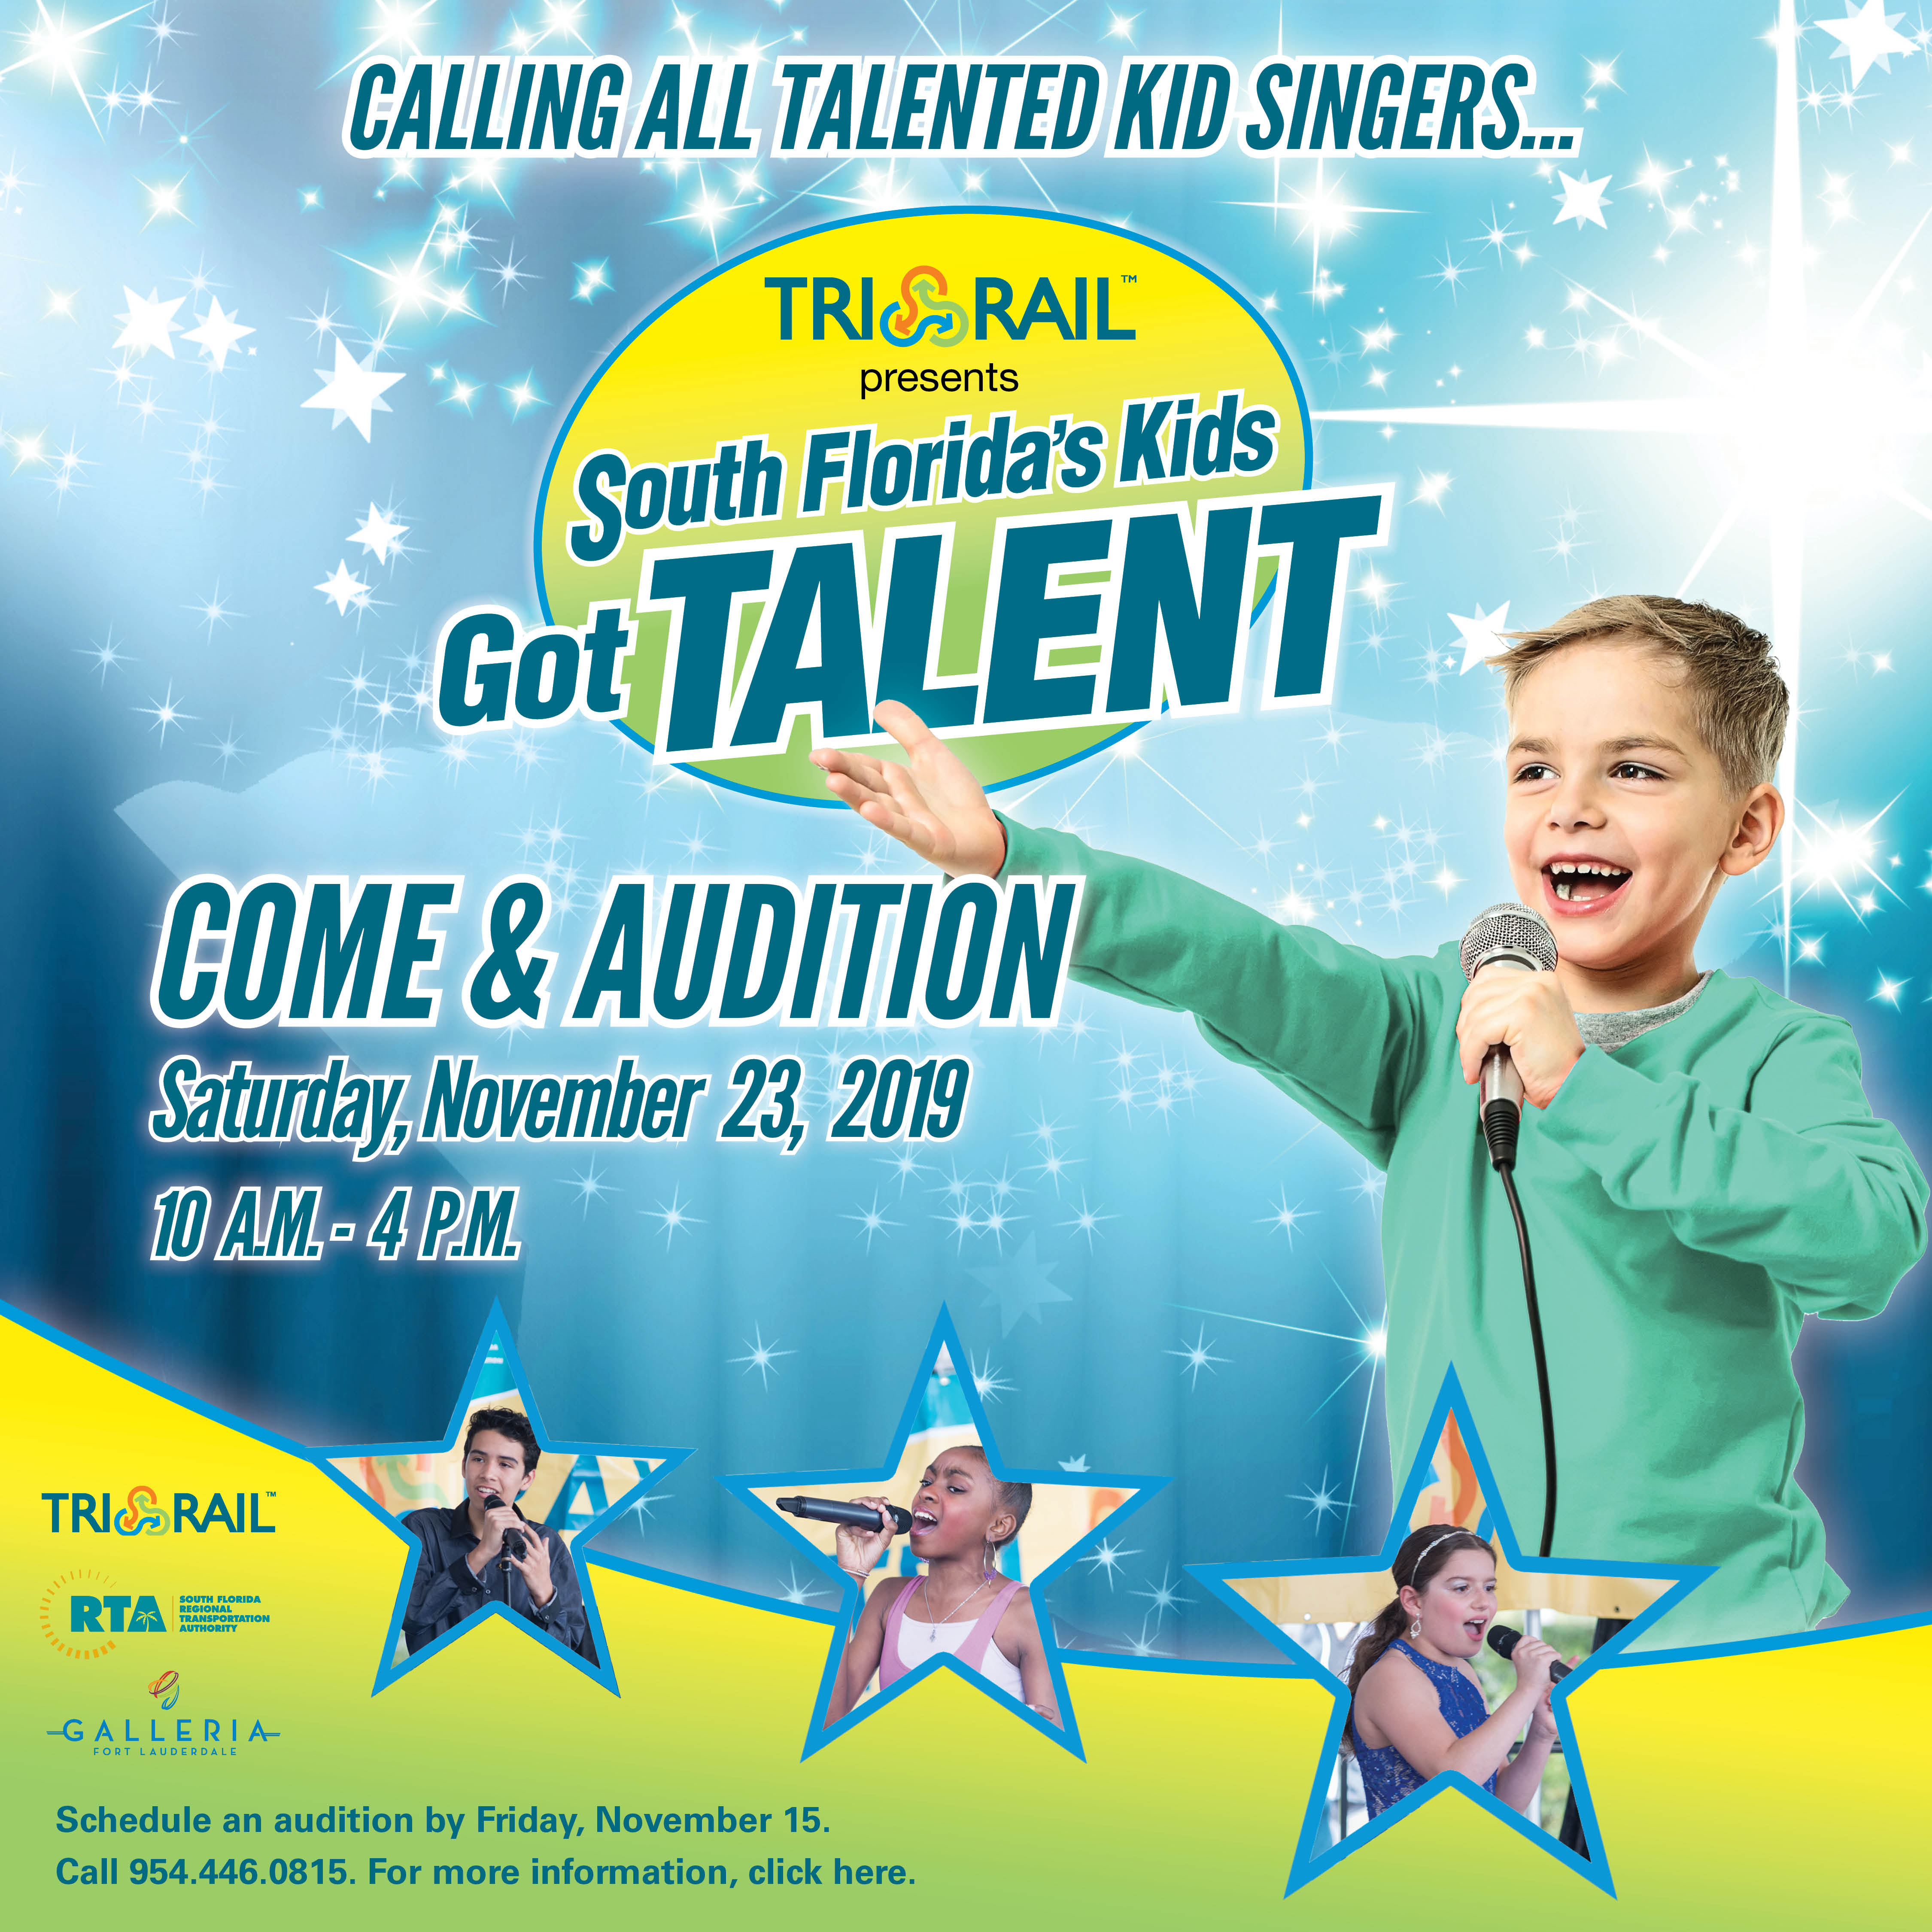 """Tri Rail To Host Auditions For """"South Florida Kids Got Talent With South Florida Fairgrounds Events Calendar"""